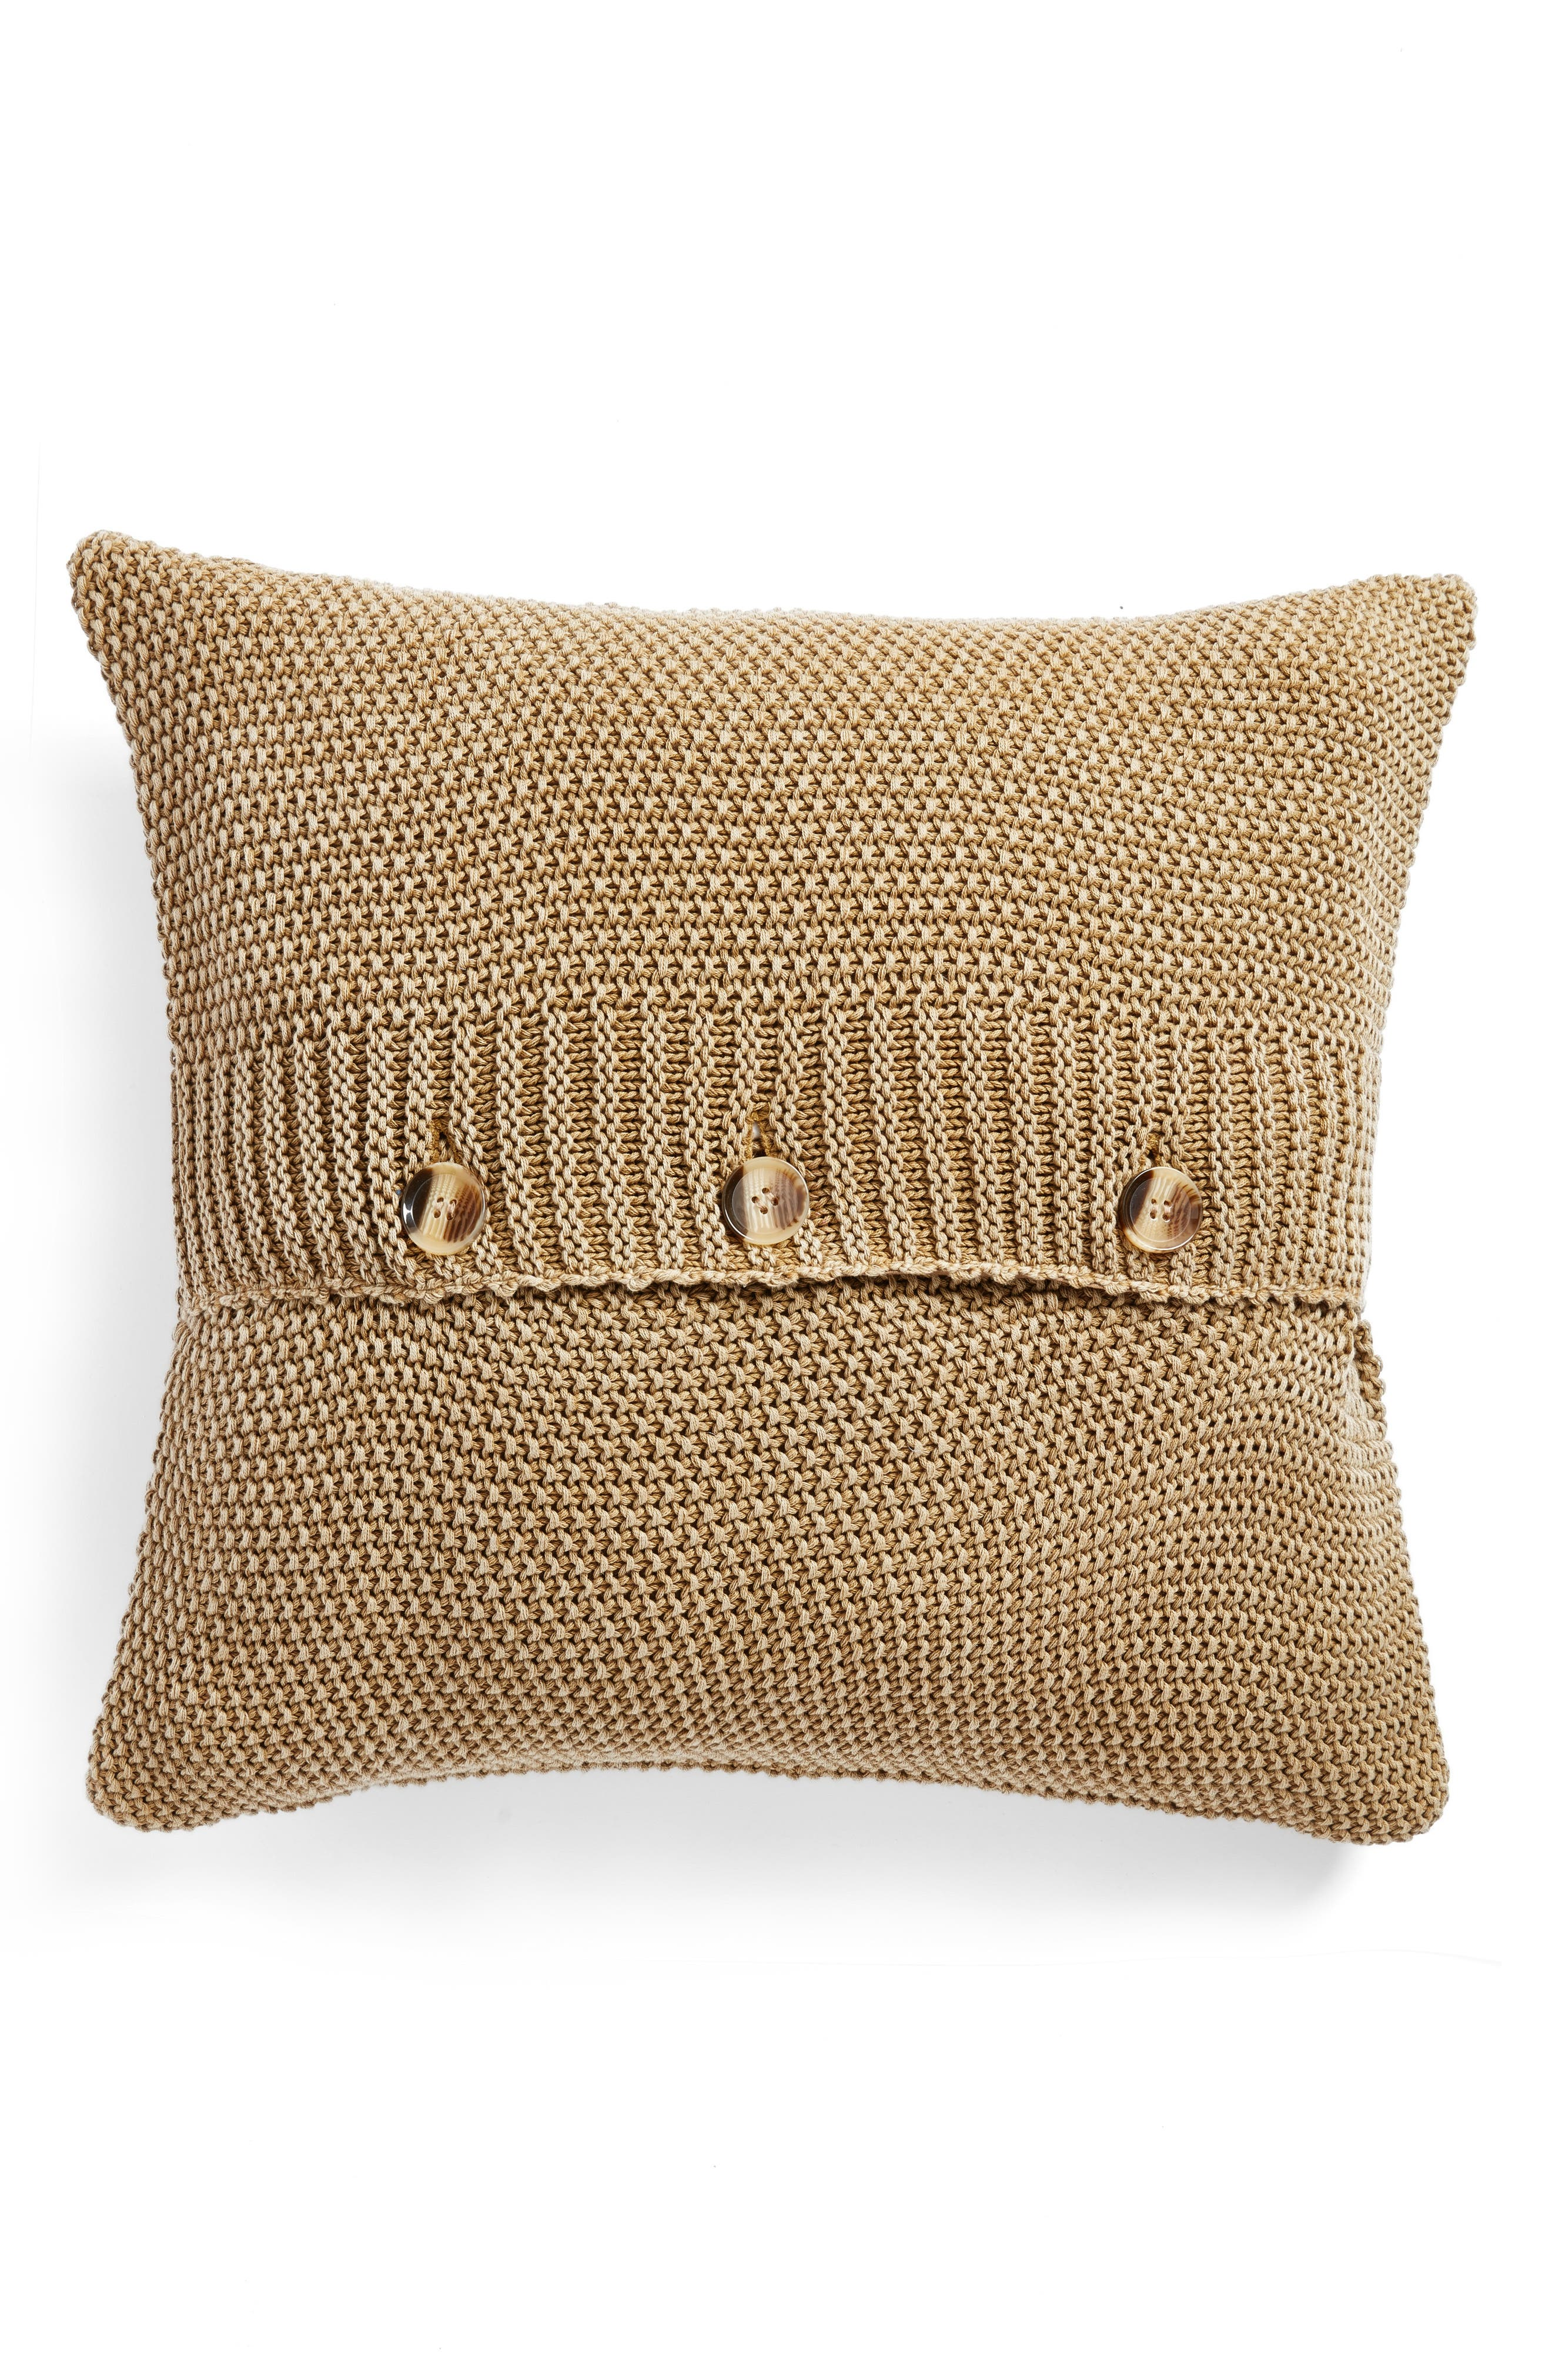 Seed Stitch Accent Pillow,                             Alternate thumbnail 2, color,                             300